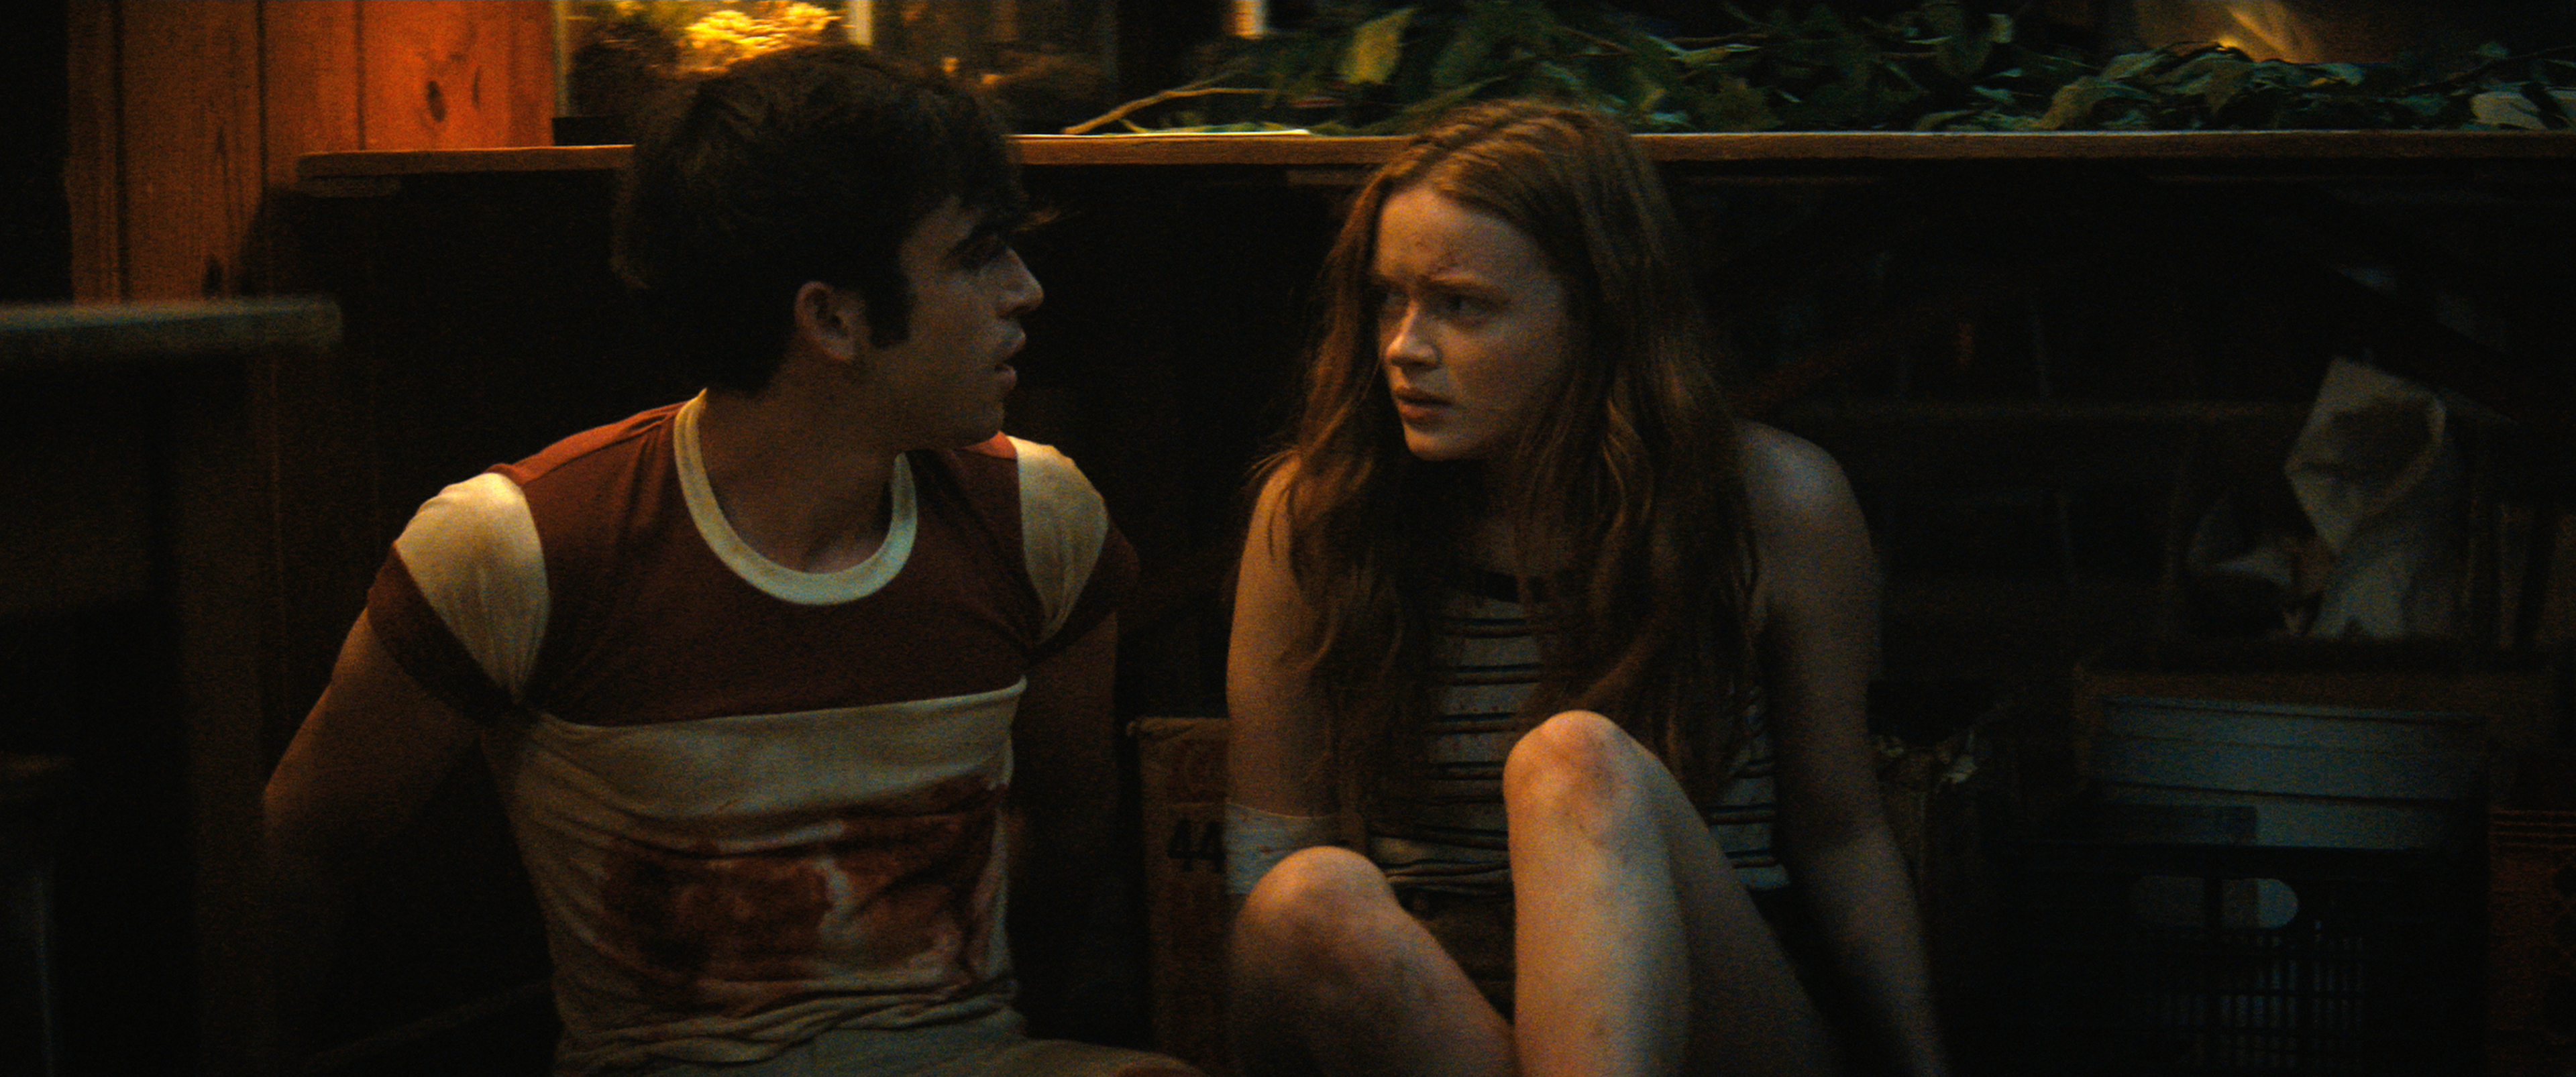 Film Review - Fear Street Part 2 1978 - Ted Sutherland and Sadie Sink